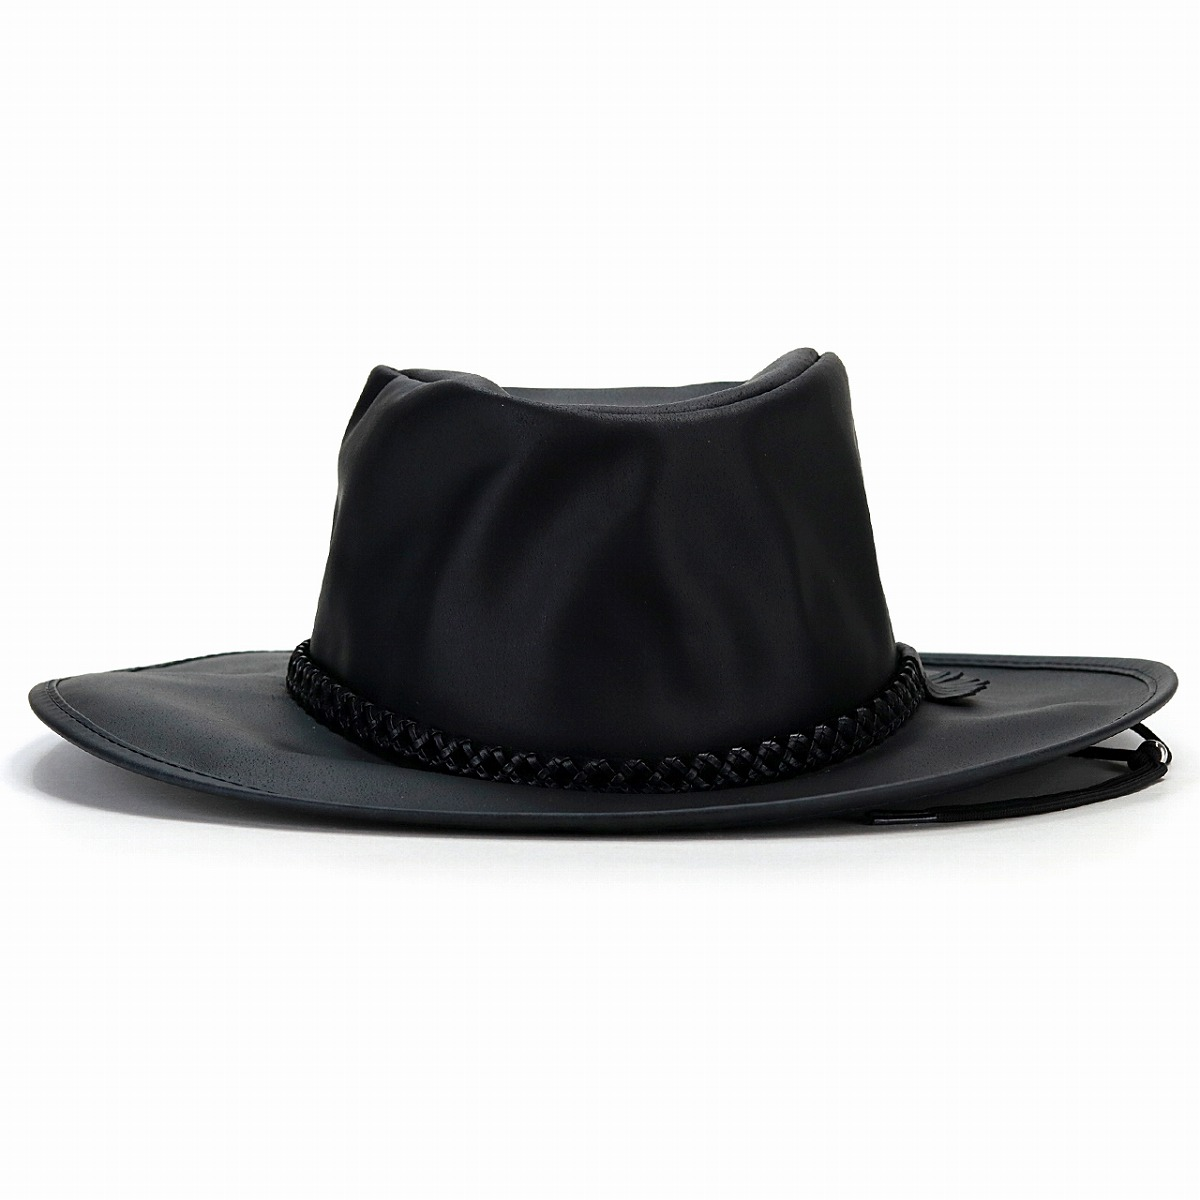 c9a8d9417d7 ... Product made in hat men Head n Home cowboy hat leather genuine leather  United States ...